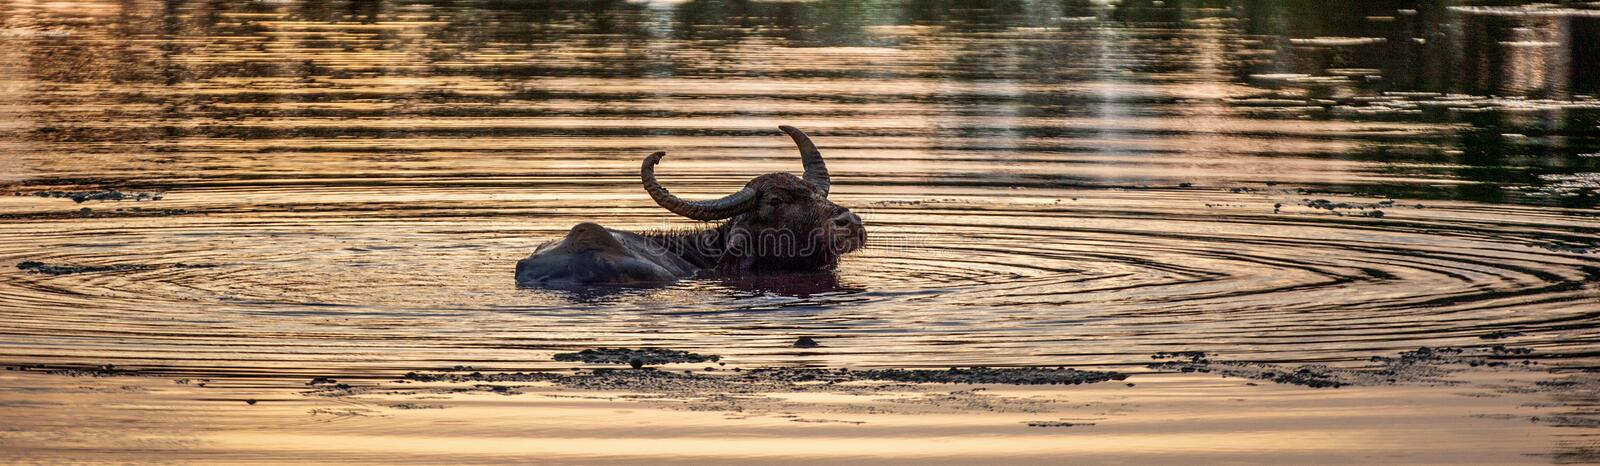 Silhouette of water buffalo in a pond with a reflection of a sunlight on water . royalty free stock photo